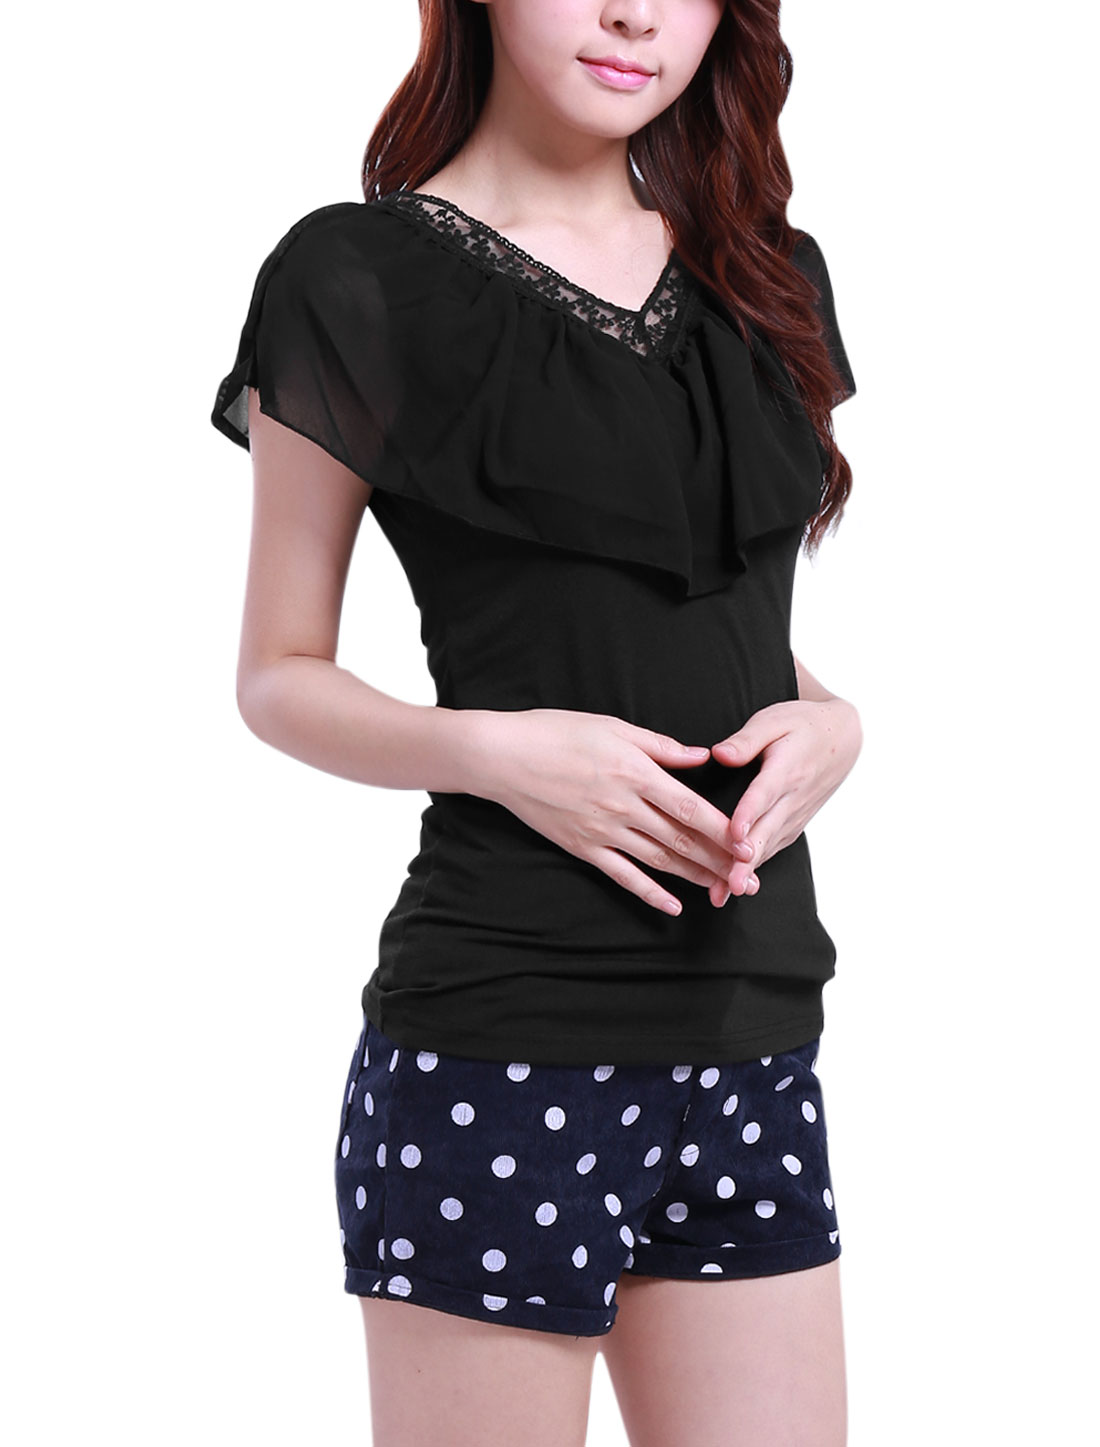 Ladies Chiffon Ruffle Detail Neckline Black Stretchy Blouse M